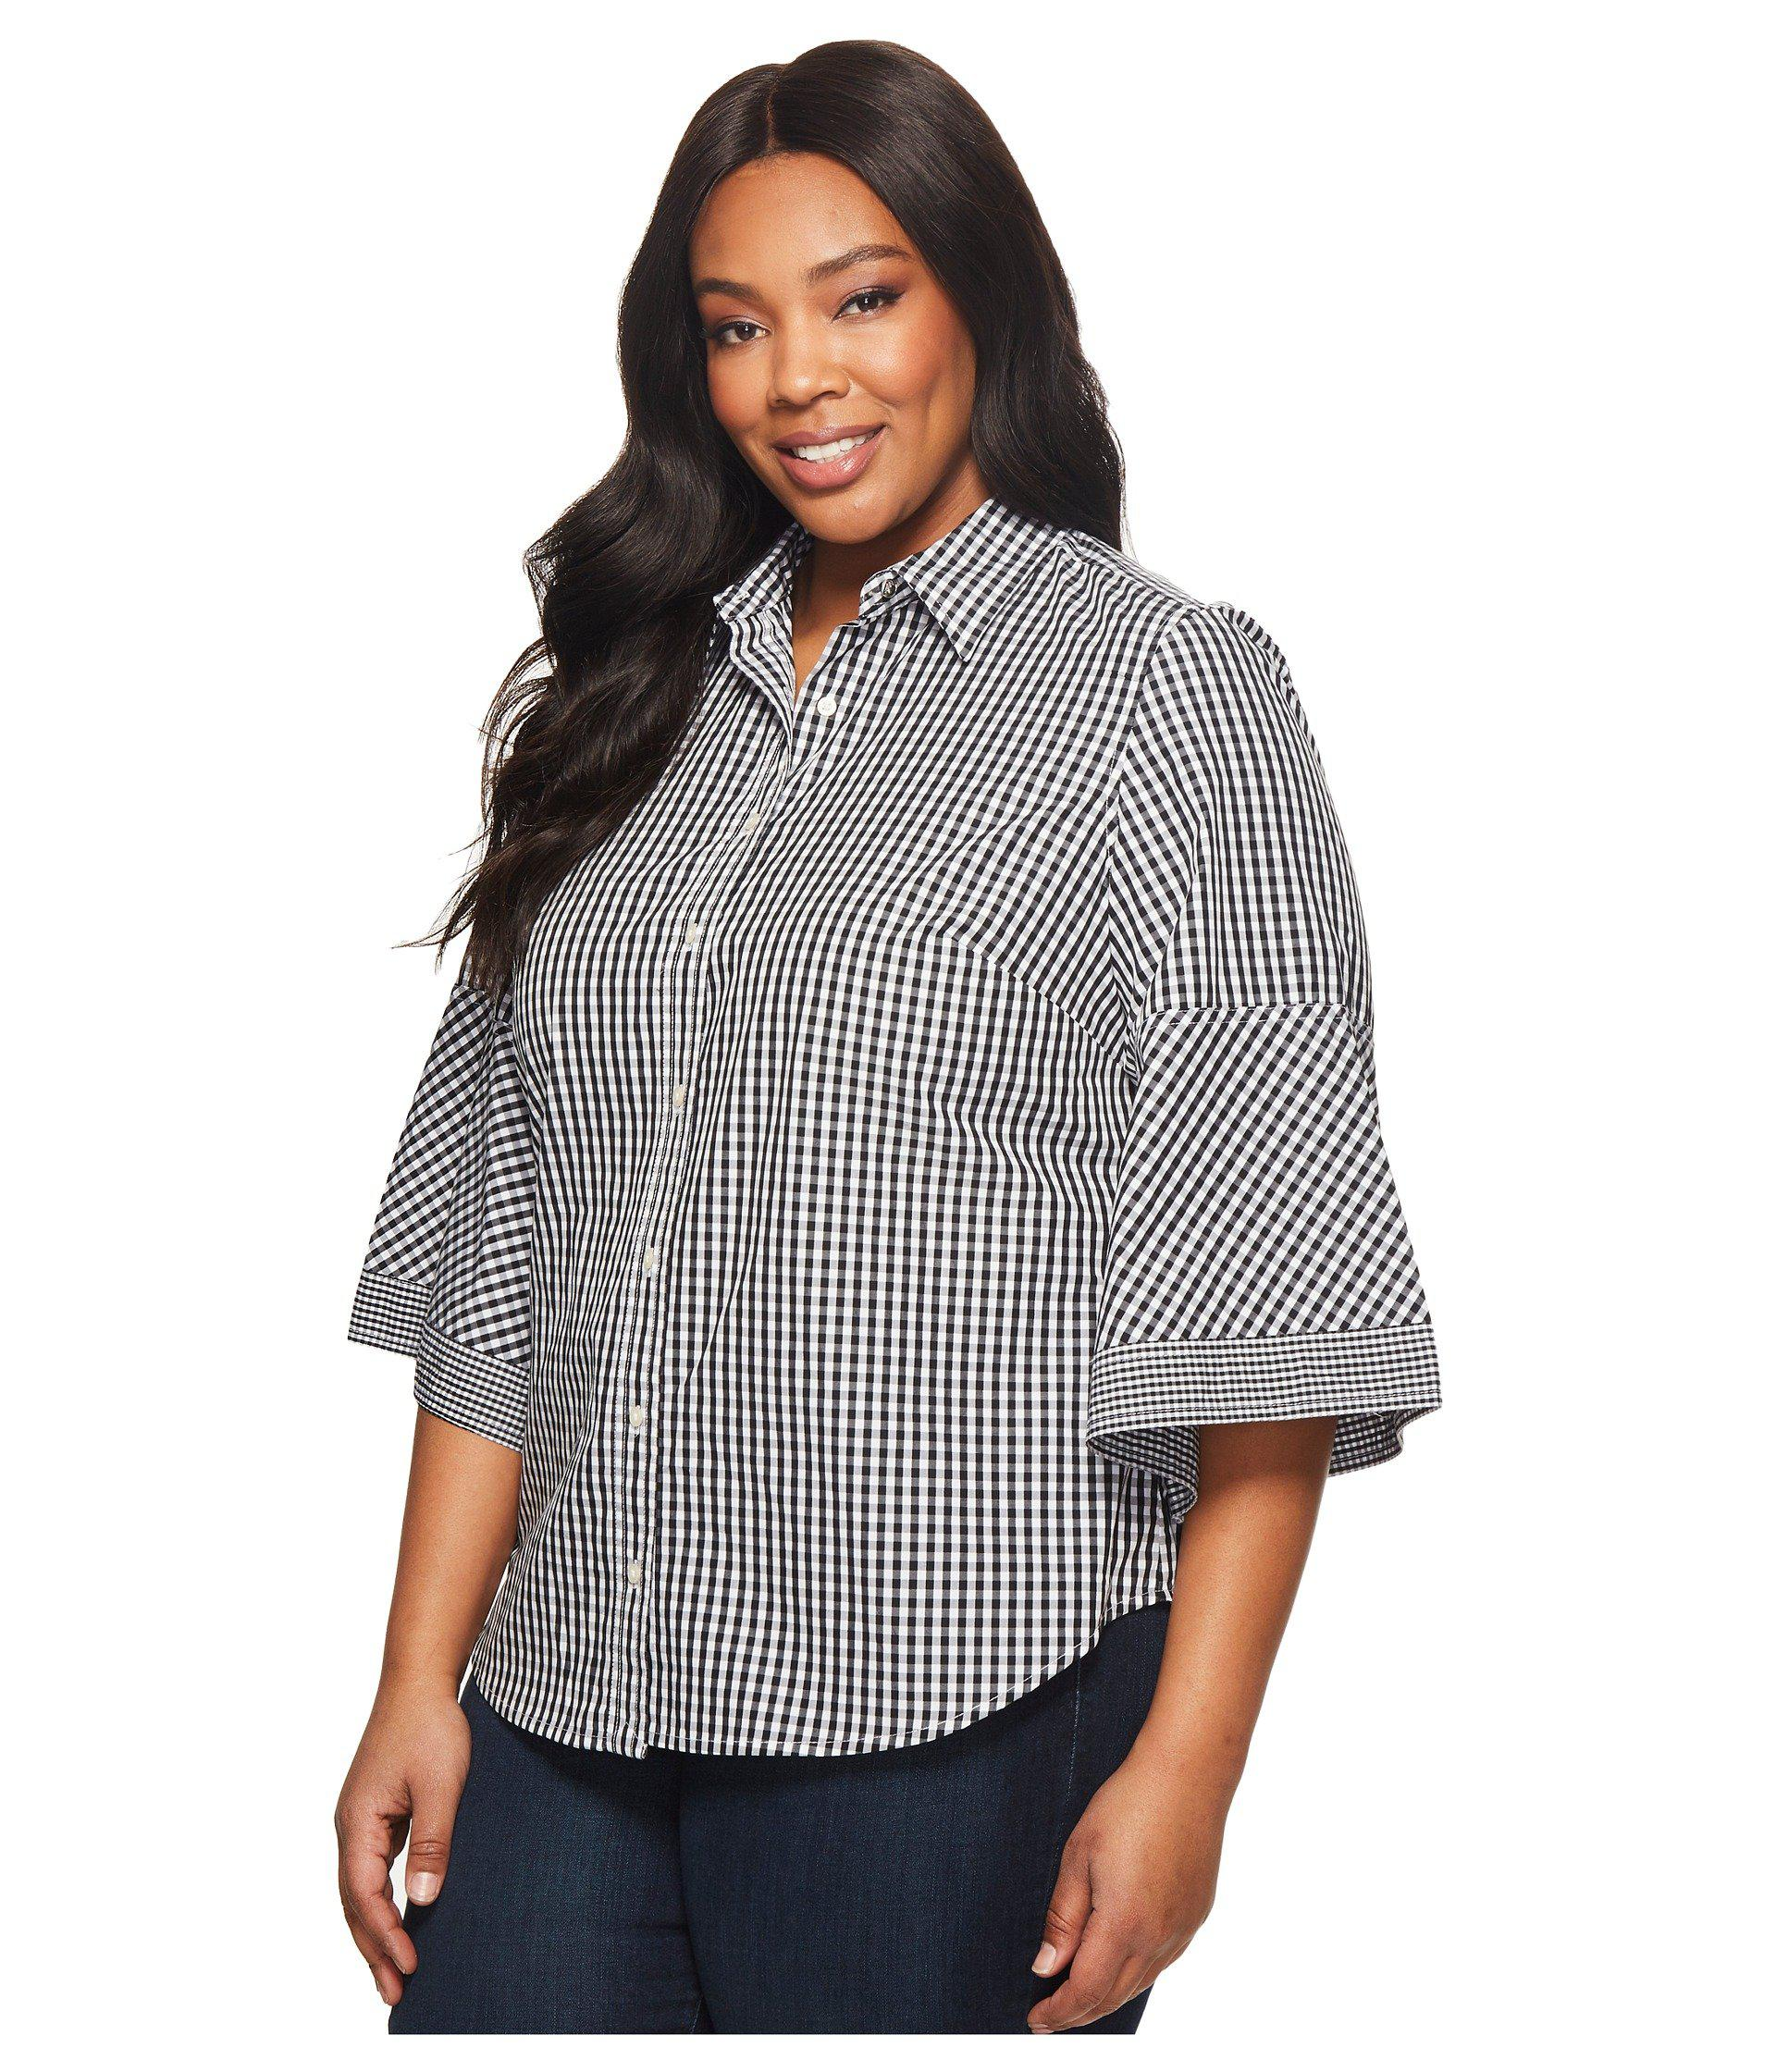 4cd40dce0e2 Lyst - Lauren by Ralph Lauren Plus Size Gingham Bell-sleeve Shirt in Black  - Save 51%